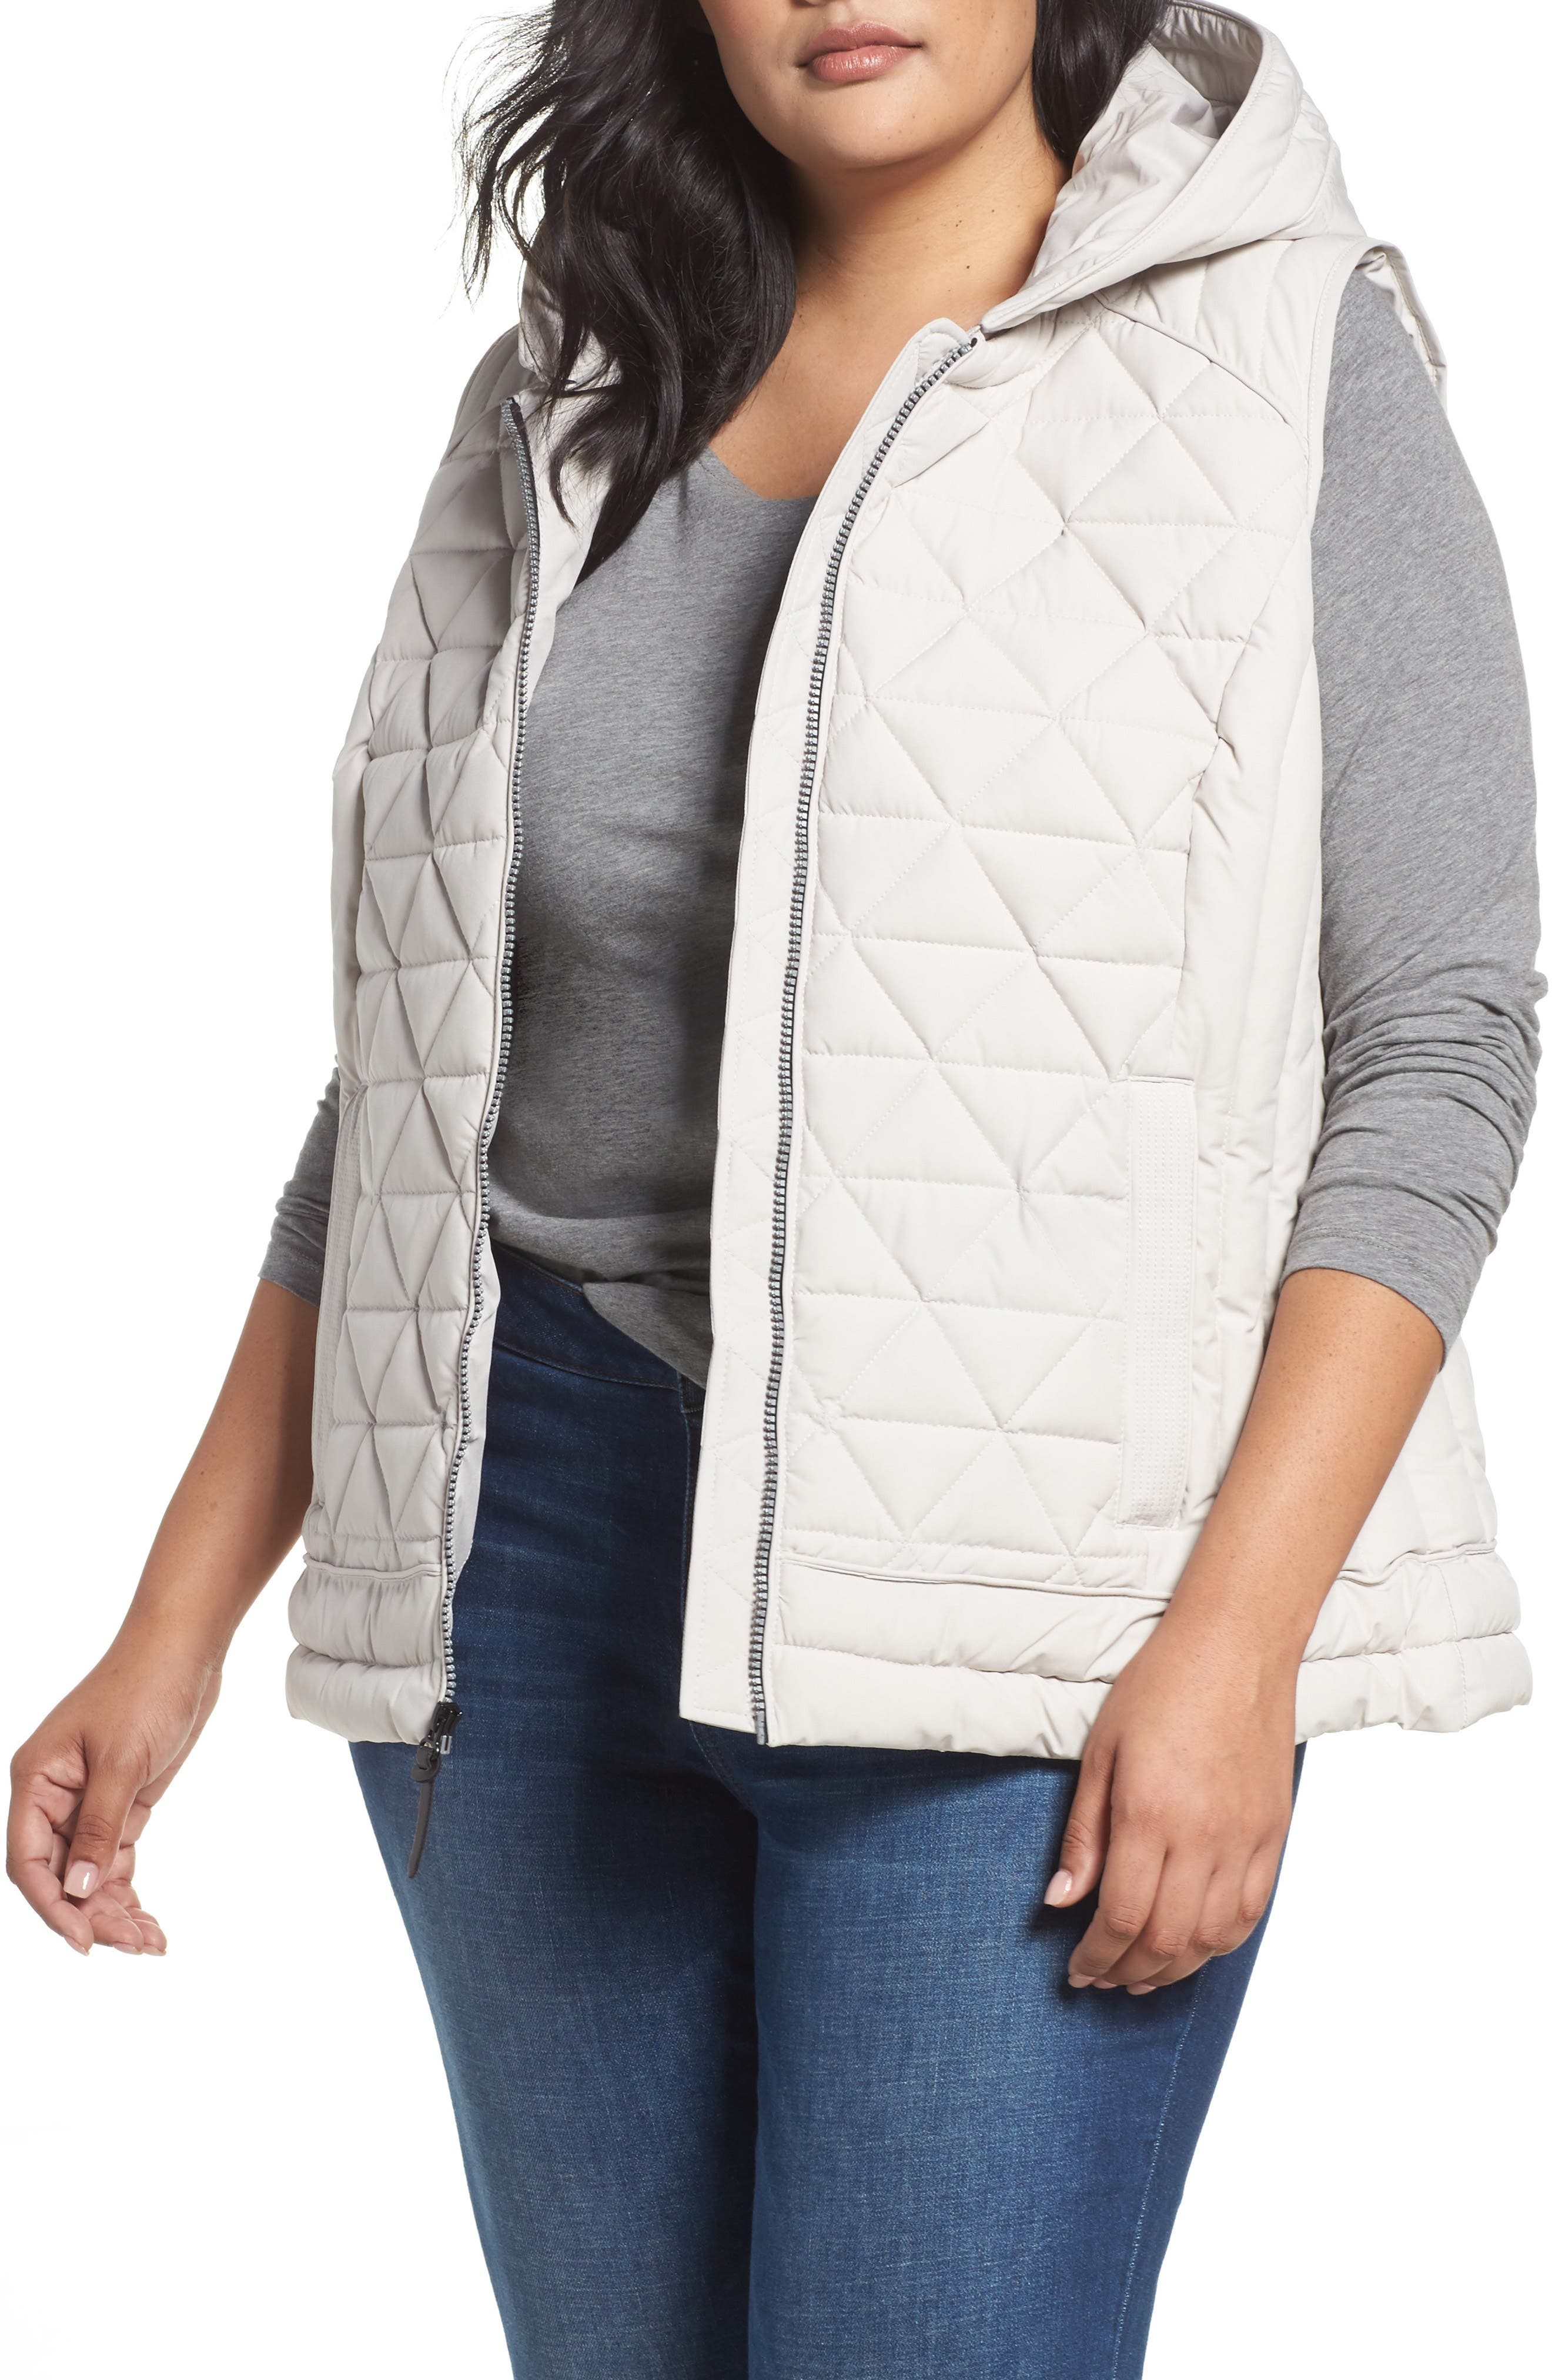 Main Image - Andrew Marc Sage Quilted Vest (Plus Size)